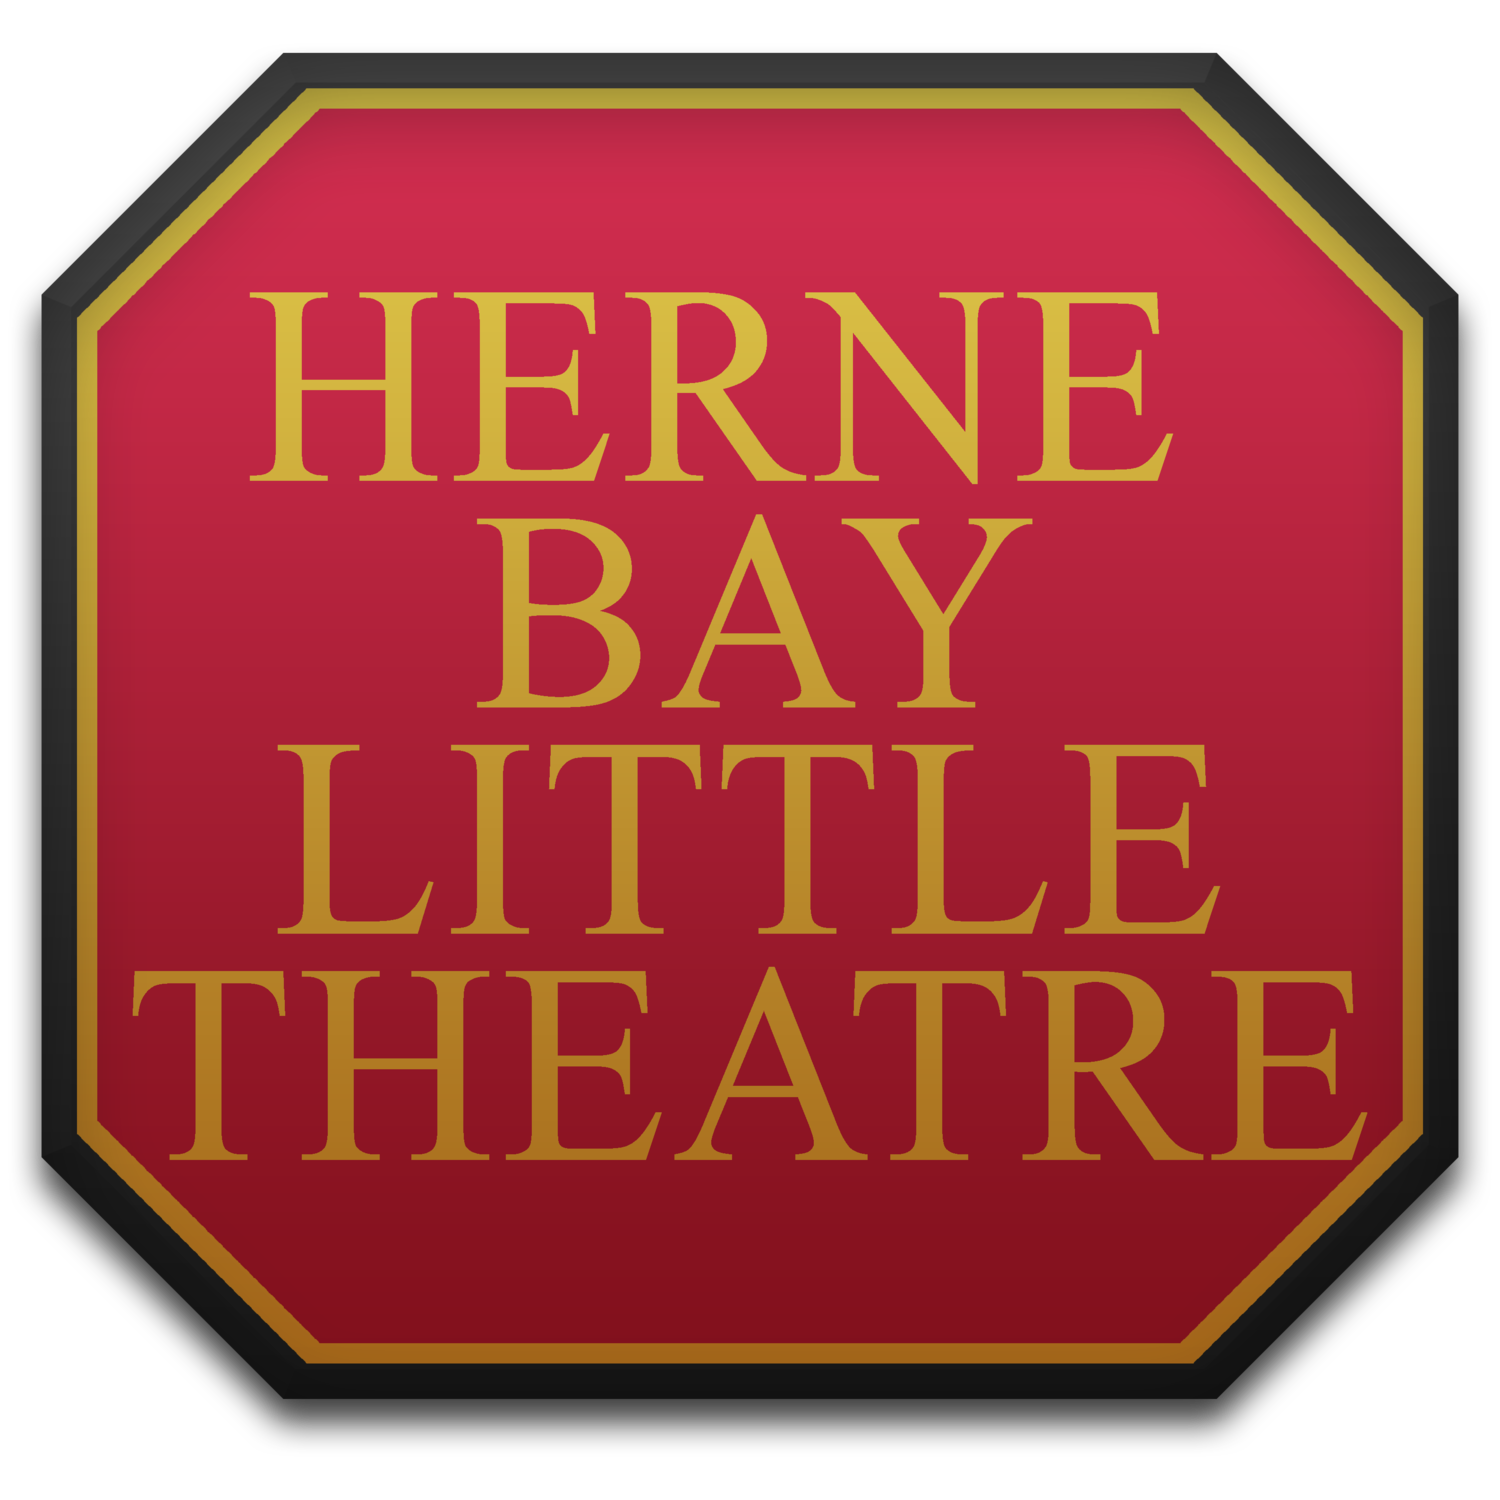 Herne Bay Little Theatre